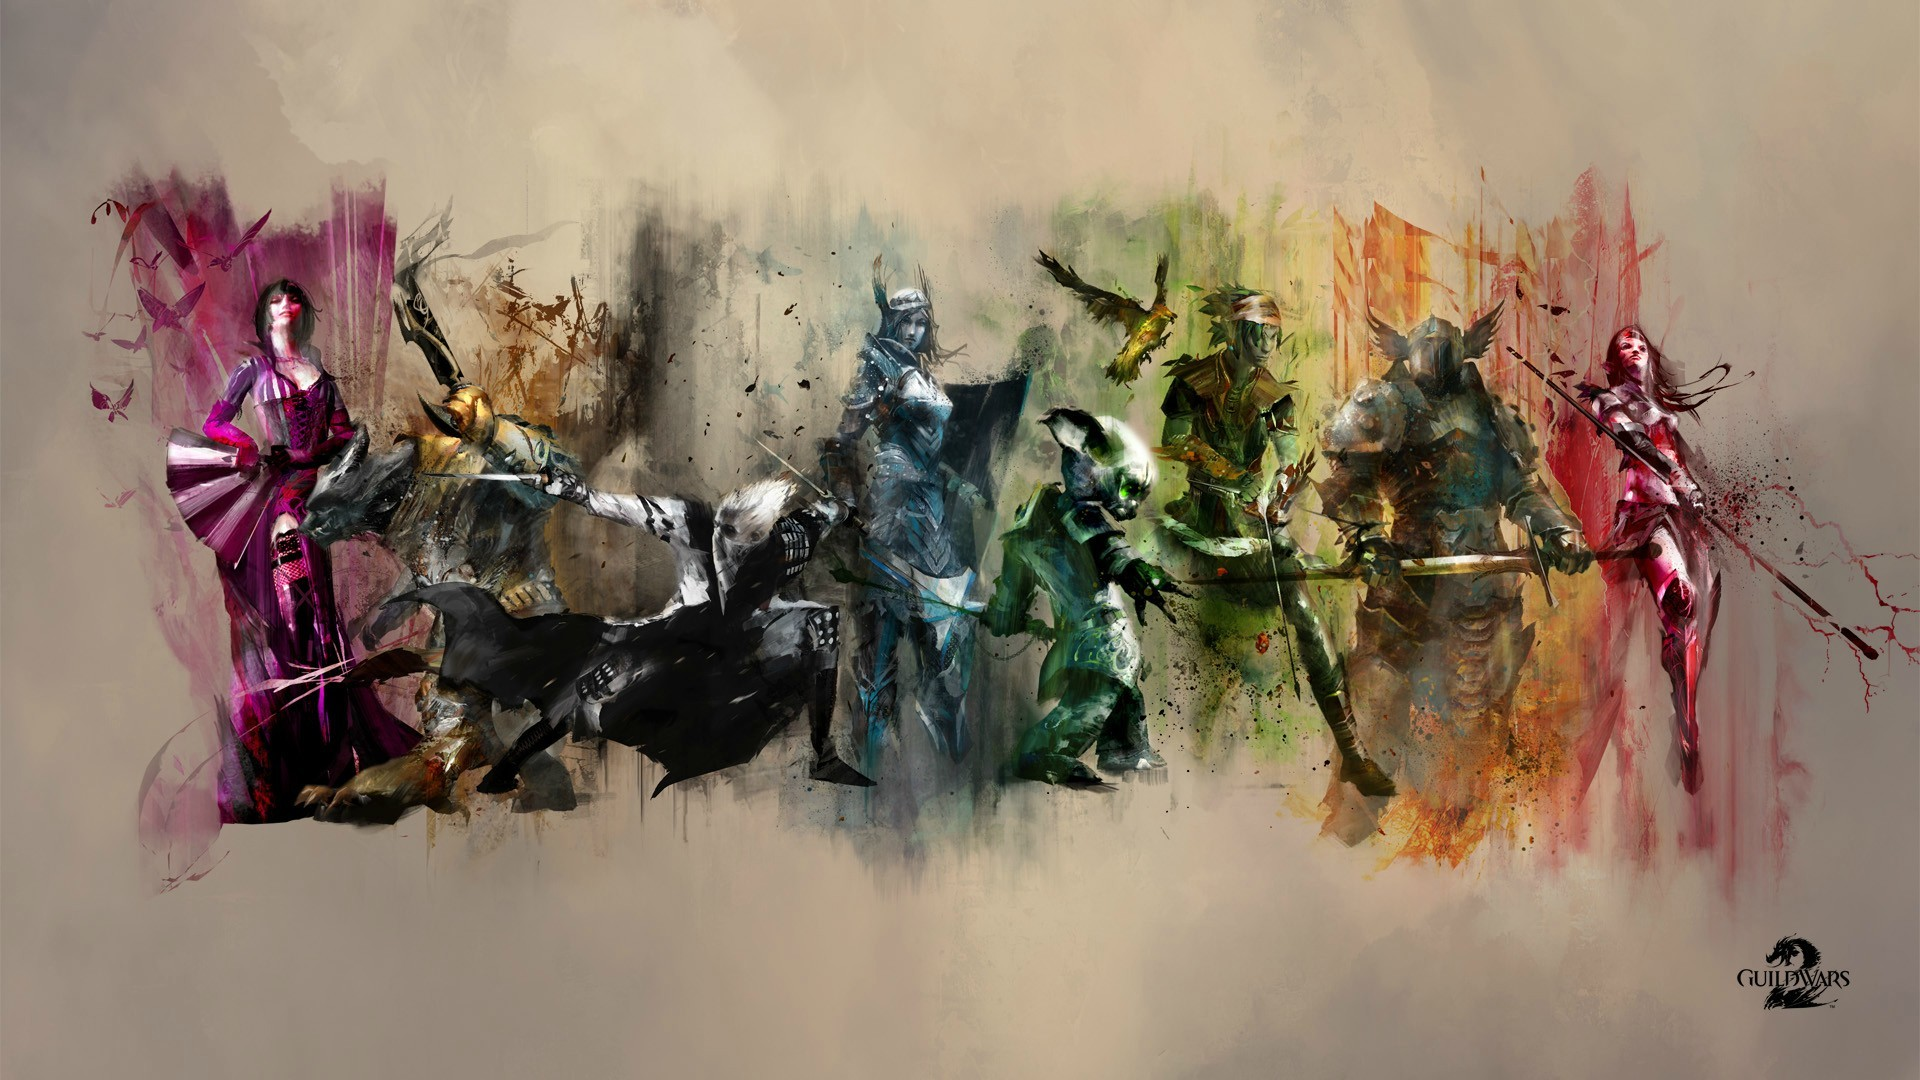 Guild wars 2 wallpapers best wallpapers for Wallpaper wallpaper wallpaper